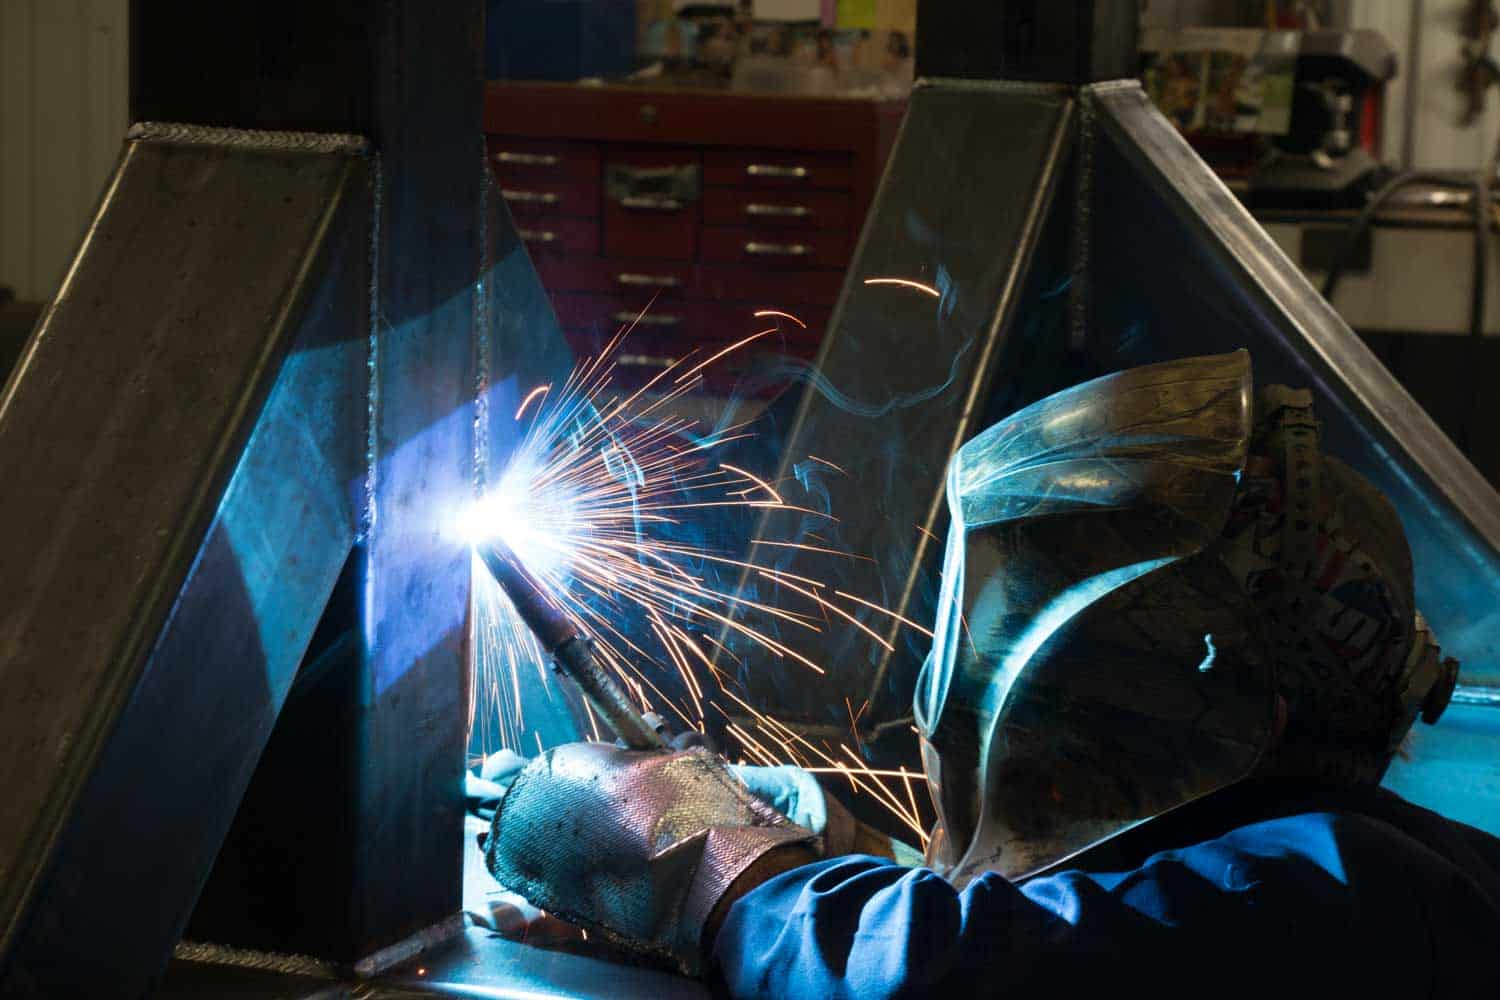 Precise metal fabrication depends on top-level technology